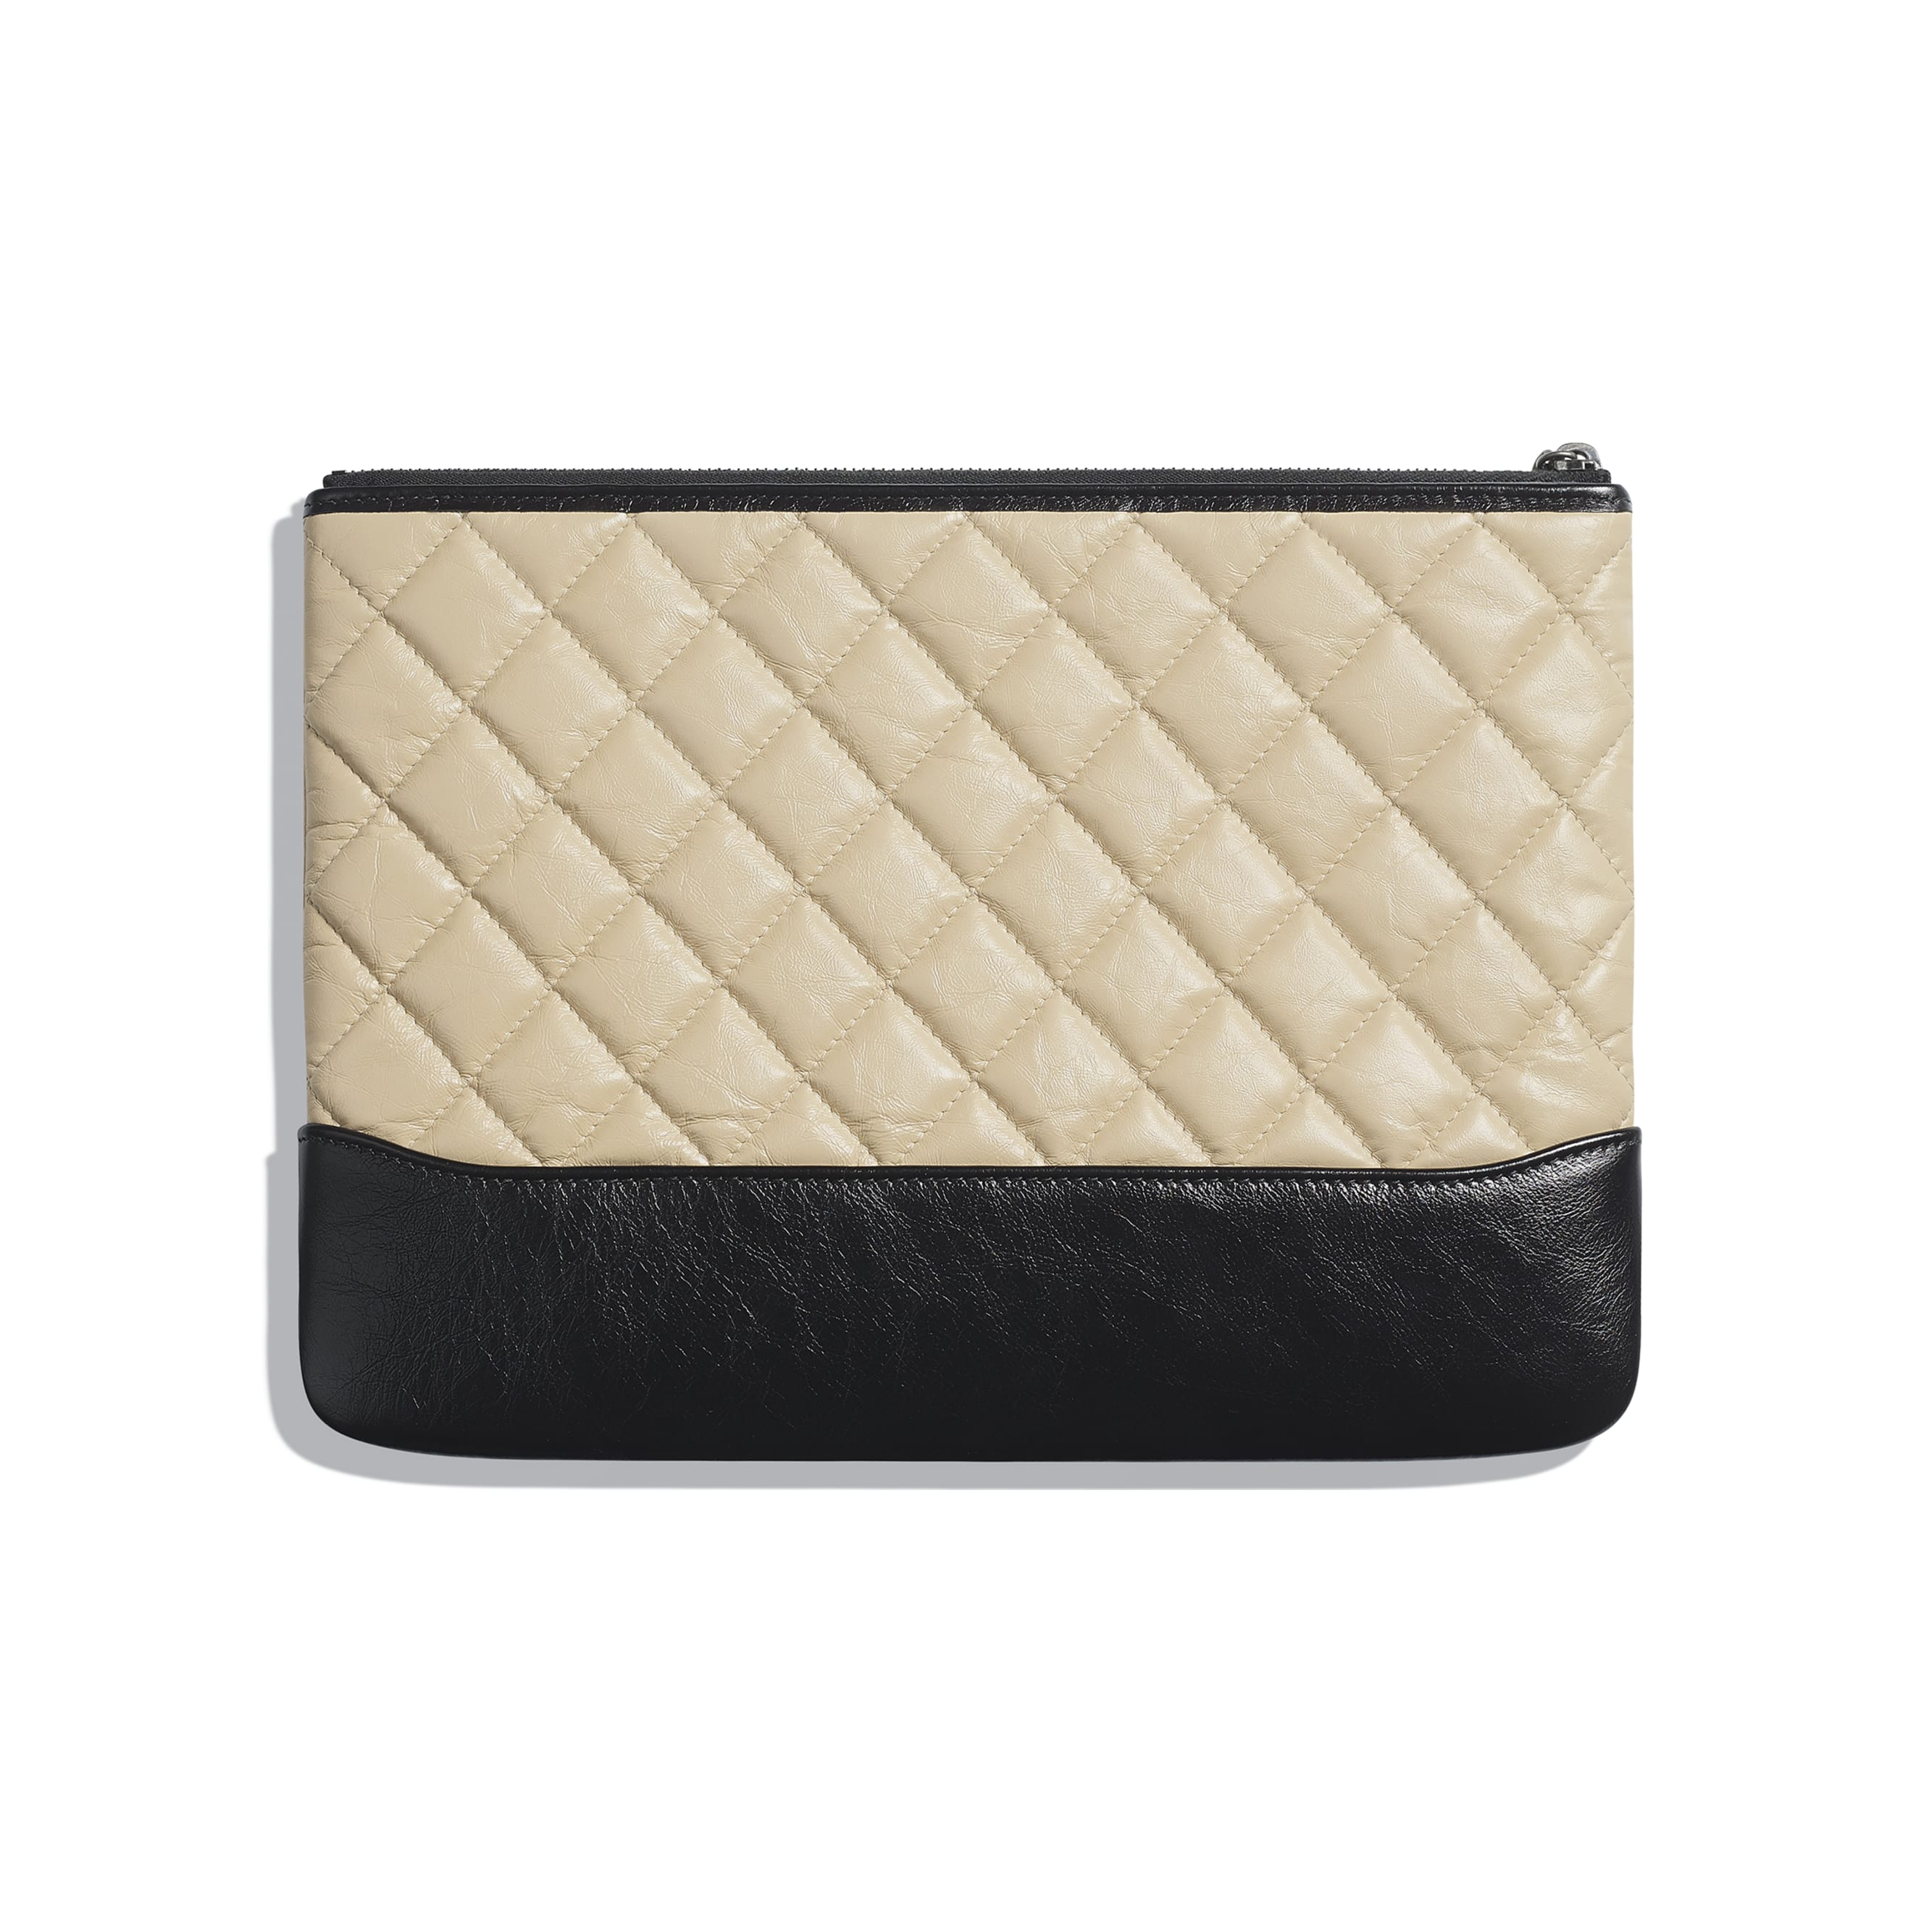 Pouch - Beige & Black - Aged Calfskin, Smooth Calfskin & Gold-Tone Metal - CHANEL - Alternative view - see standard sized version